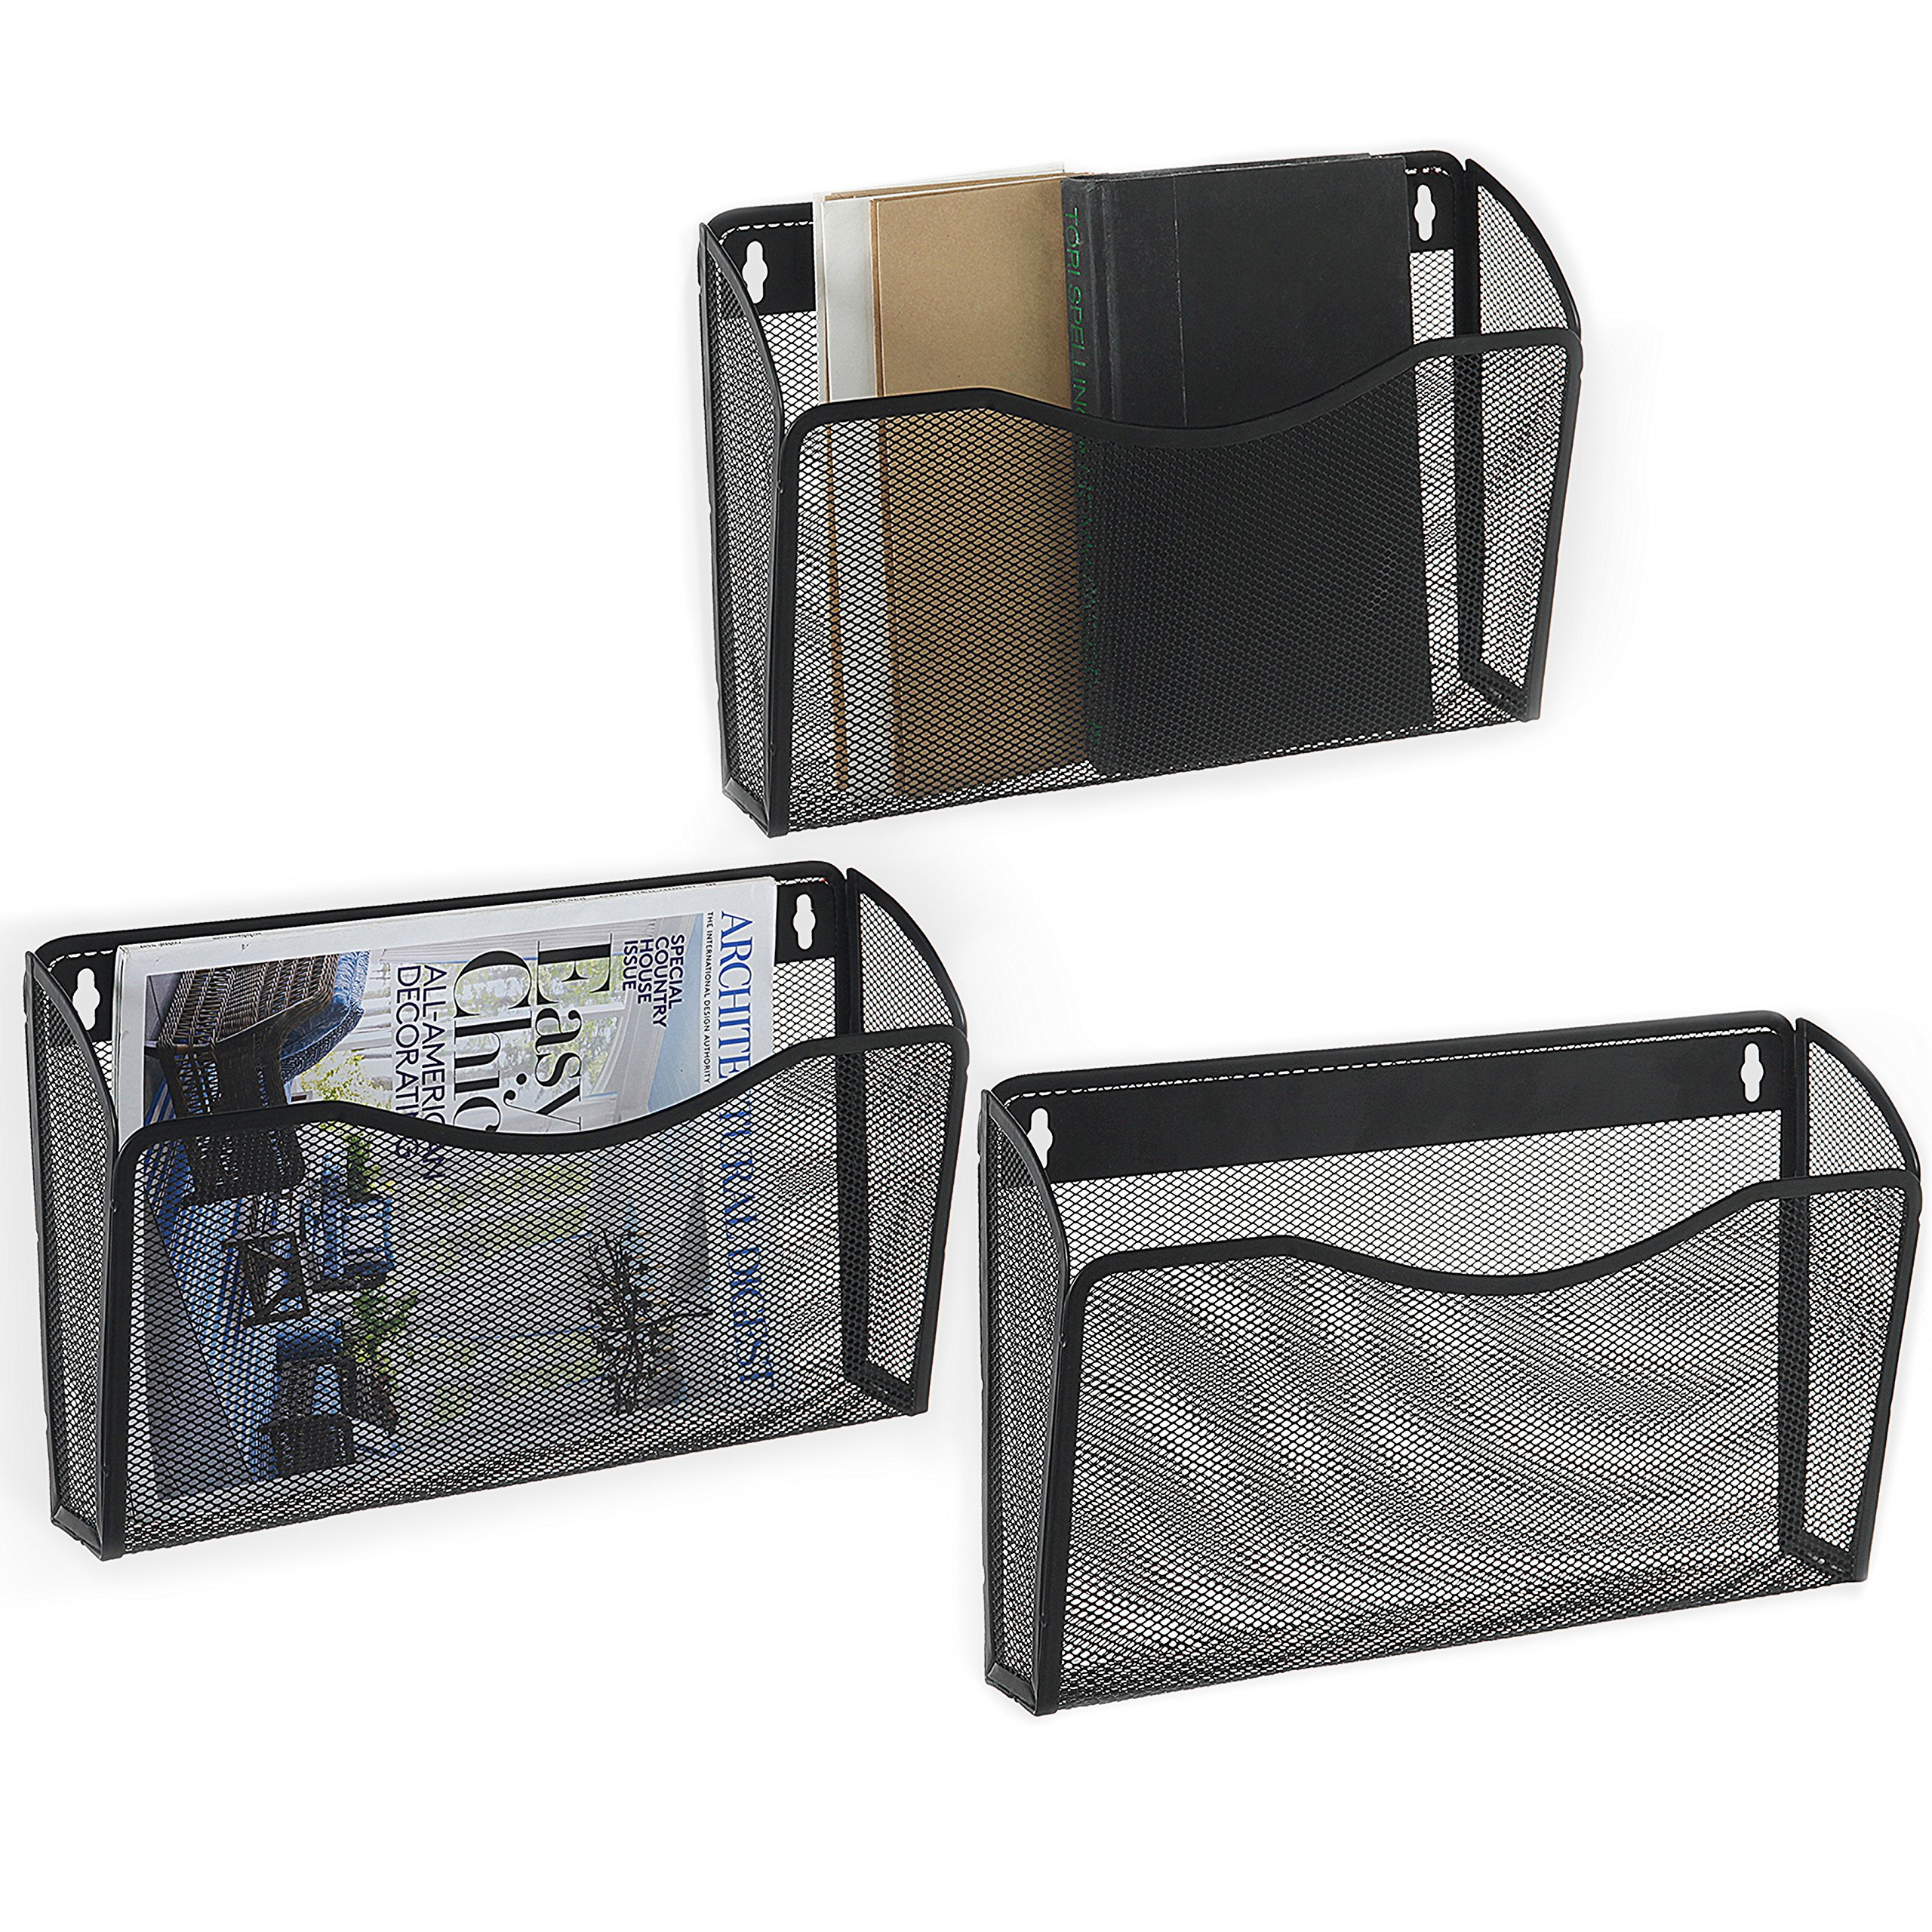 MyGift Pocket-Style Black Metal Mesh Wall-Mounted Document / Magazine Basket Racks, Set of 3